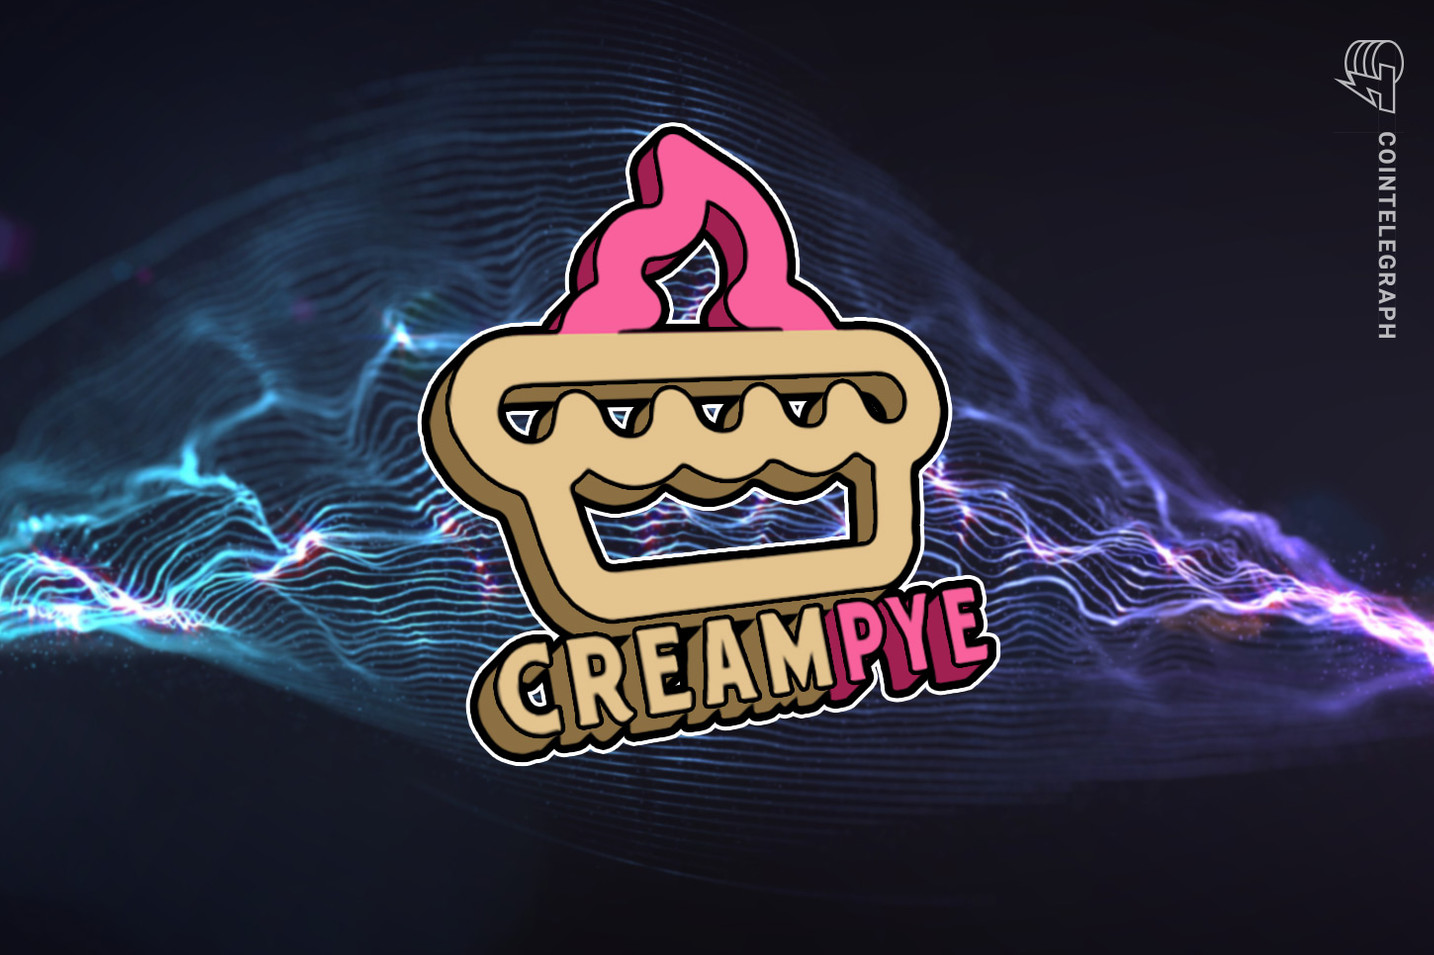 CreamPYE — The strongest cryptocurrency community backed by innovative tech